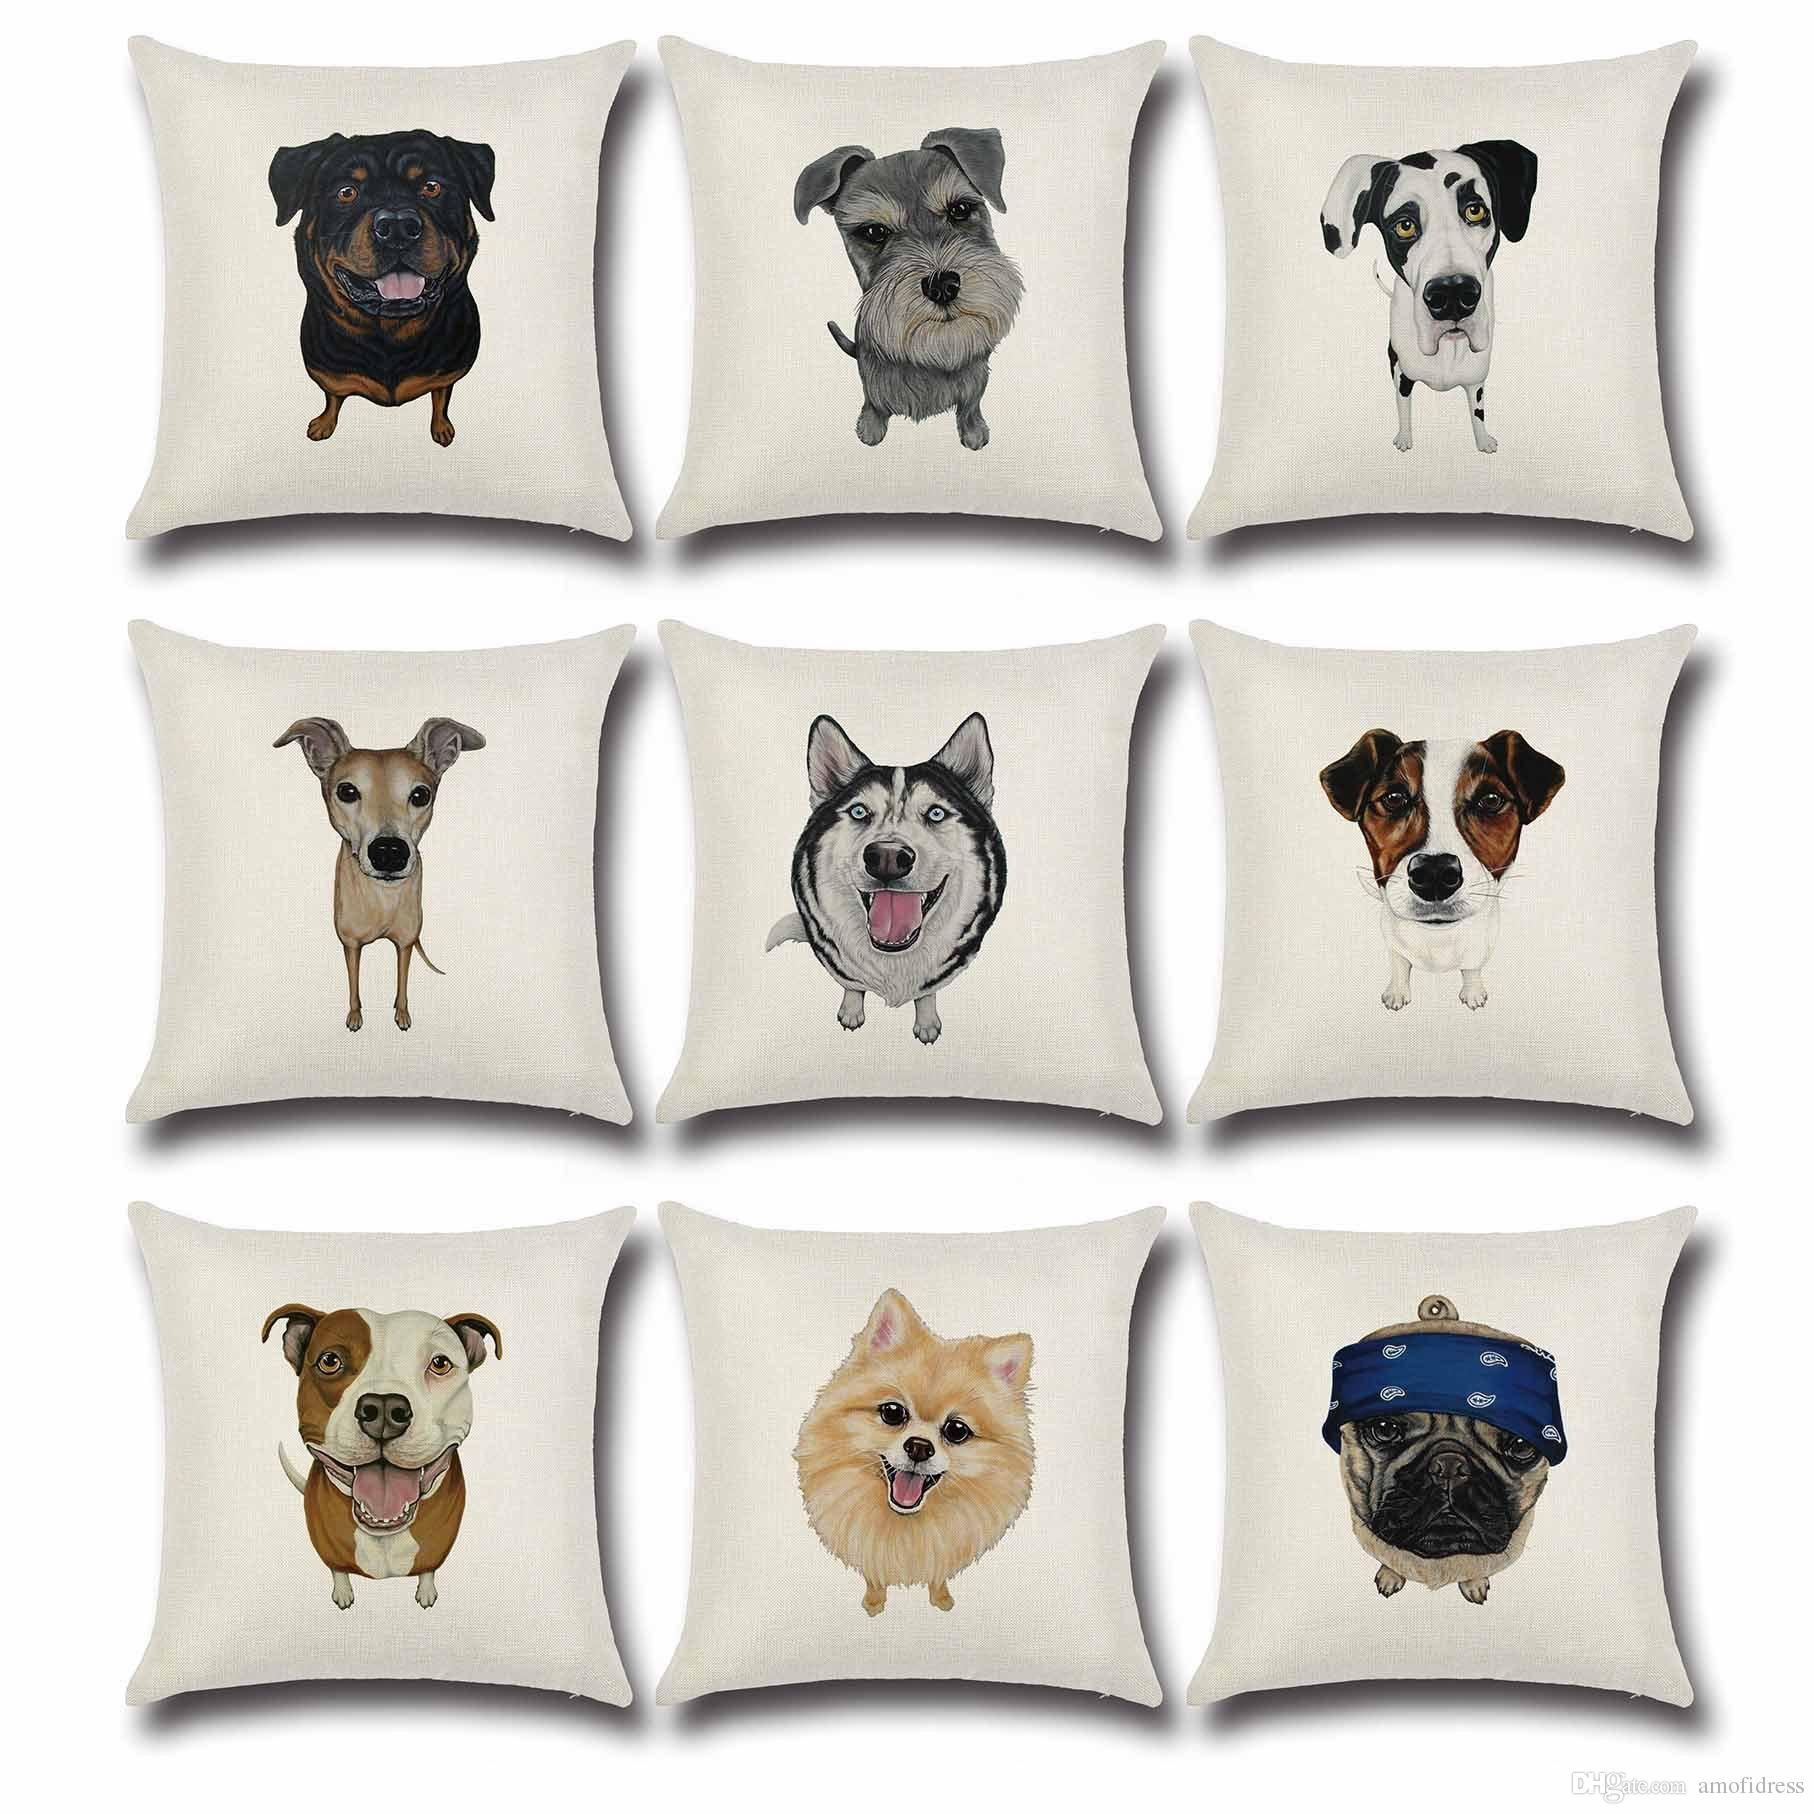 Cushion Cover Lovely Cute Pug Dog Pillowcases Cotton Linen Printed